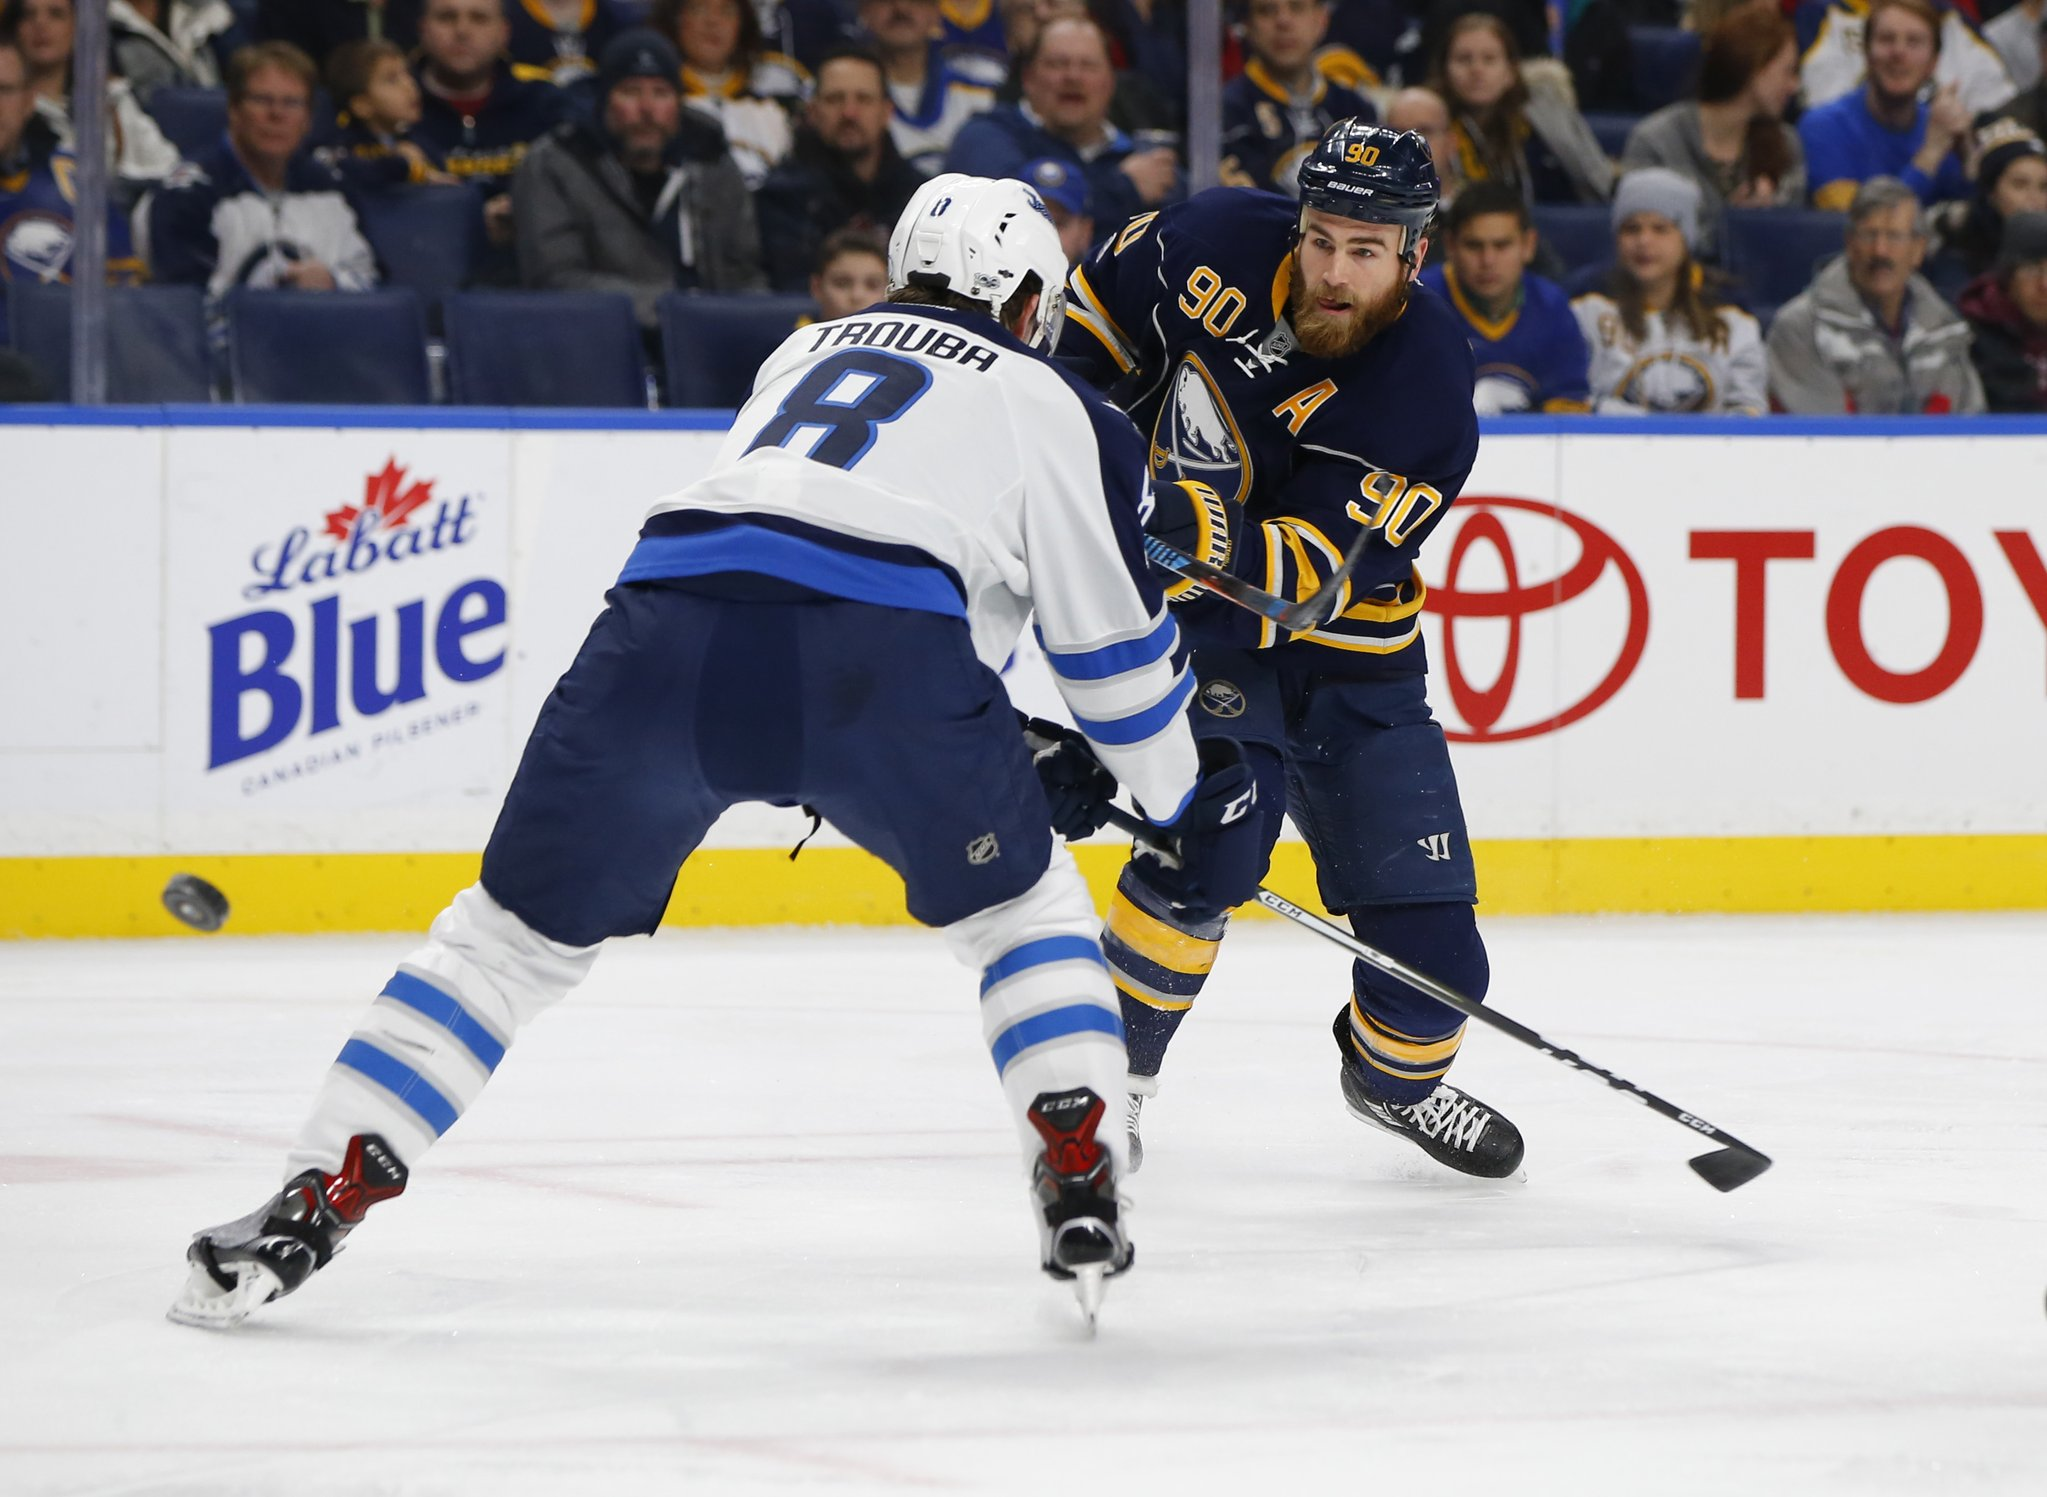 The Sabres and Ryan OReilly went after Jacob Trouba and the Jets after two poor periods. (Harry Scull Jr./Buffalo News)